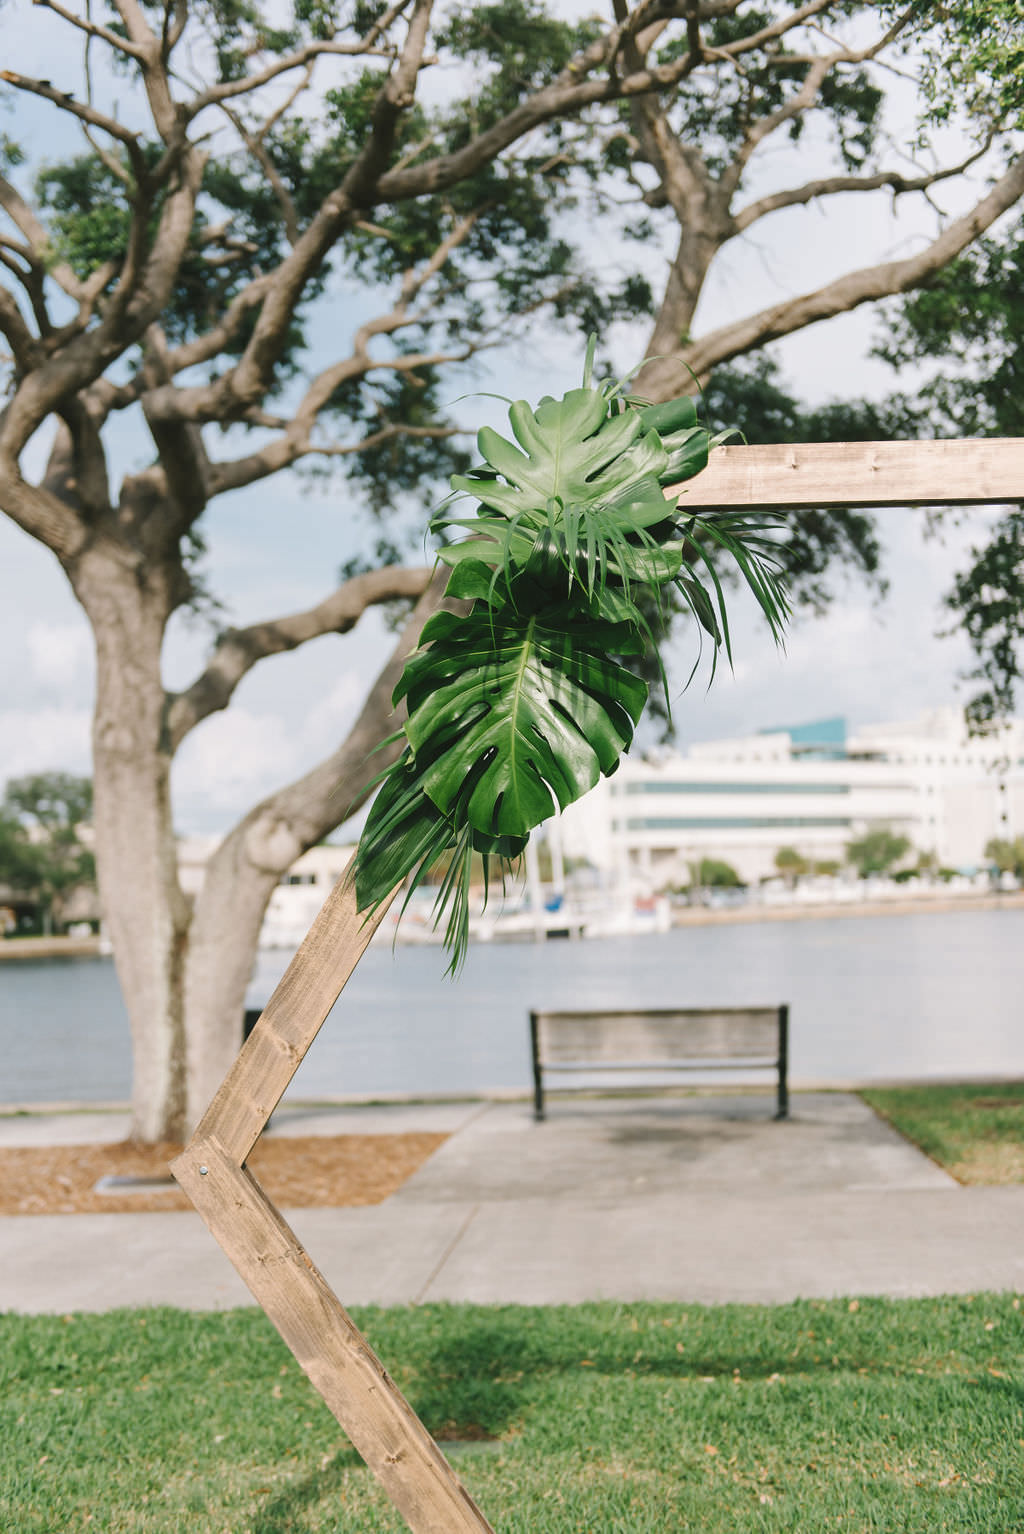 Modern, Simple Outdoor Waterfront Wedding Ceremony Decor, Geometric Wooden Arch with Tropical Monstera Palm Leaves   Wedding Photographer Kera Photography   St. Petersburg Wedding Venue The Poynter Institute